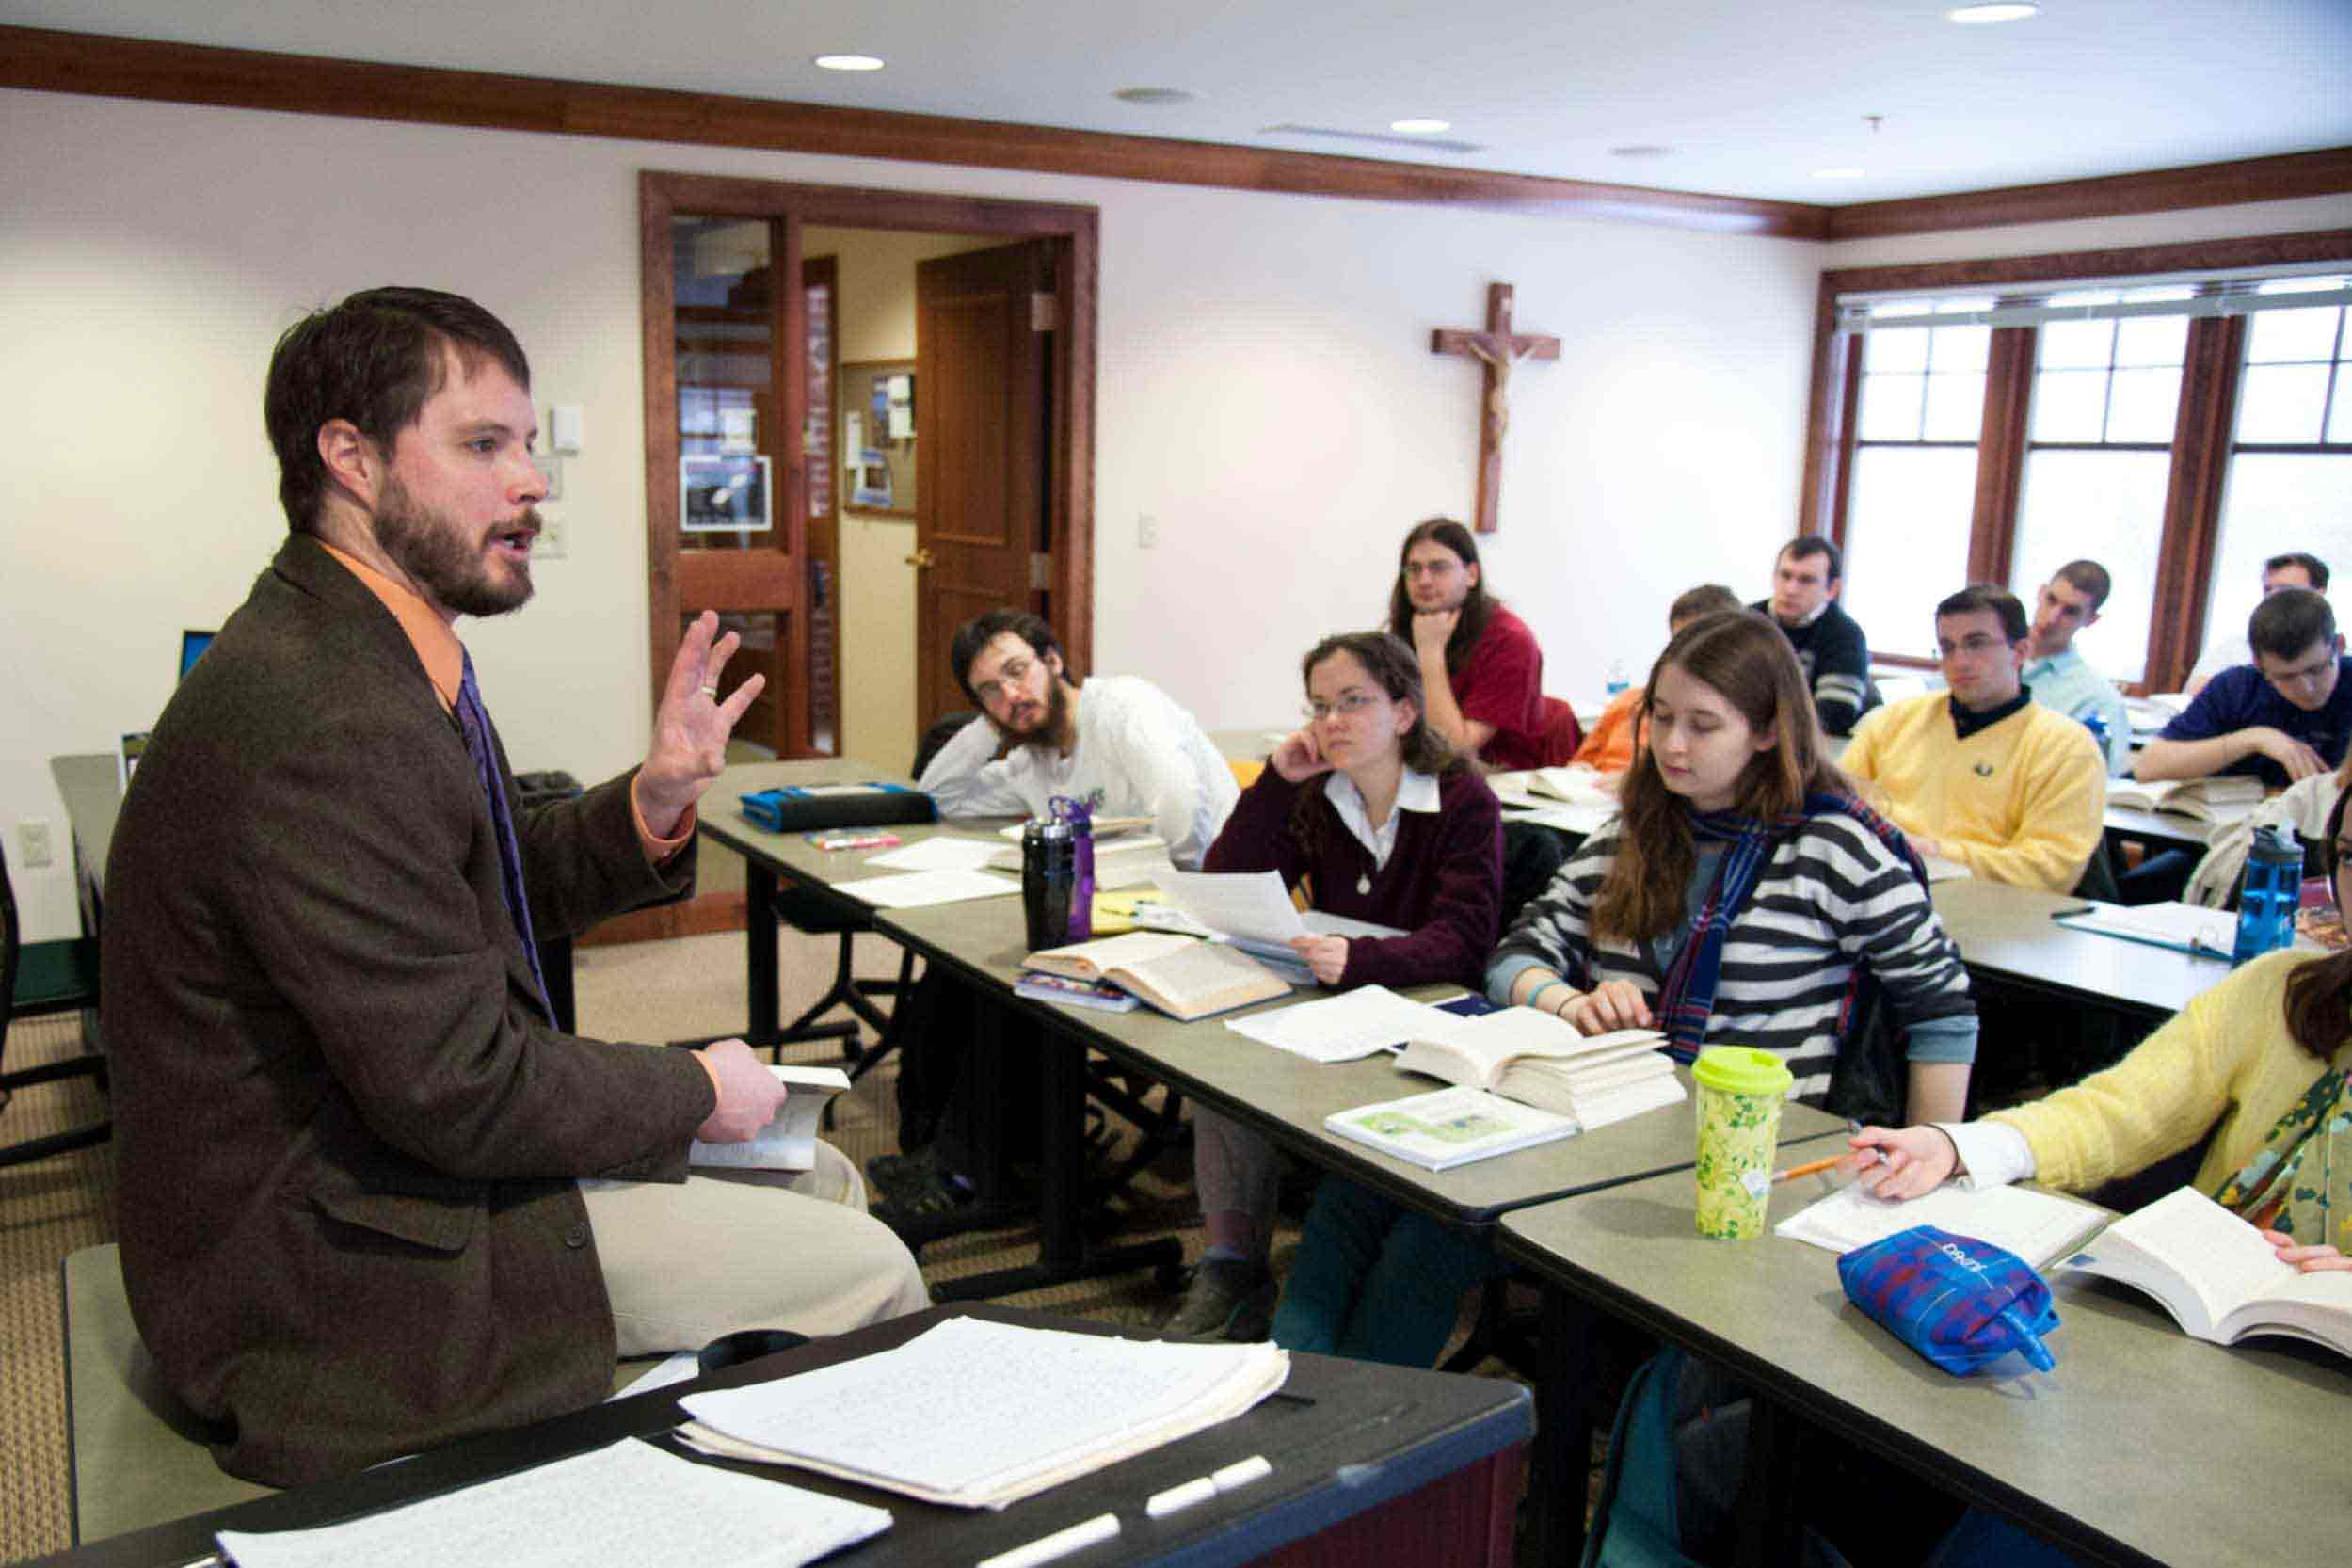 Associate professor of Philosophy, teaches a Catholic Vision course